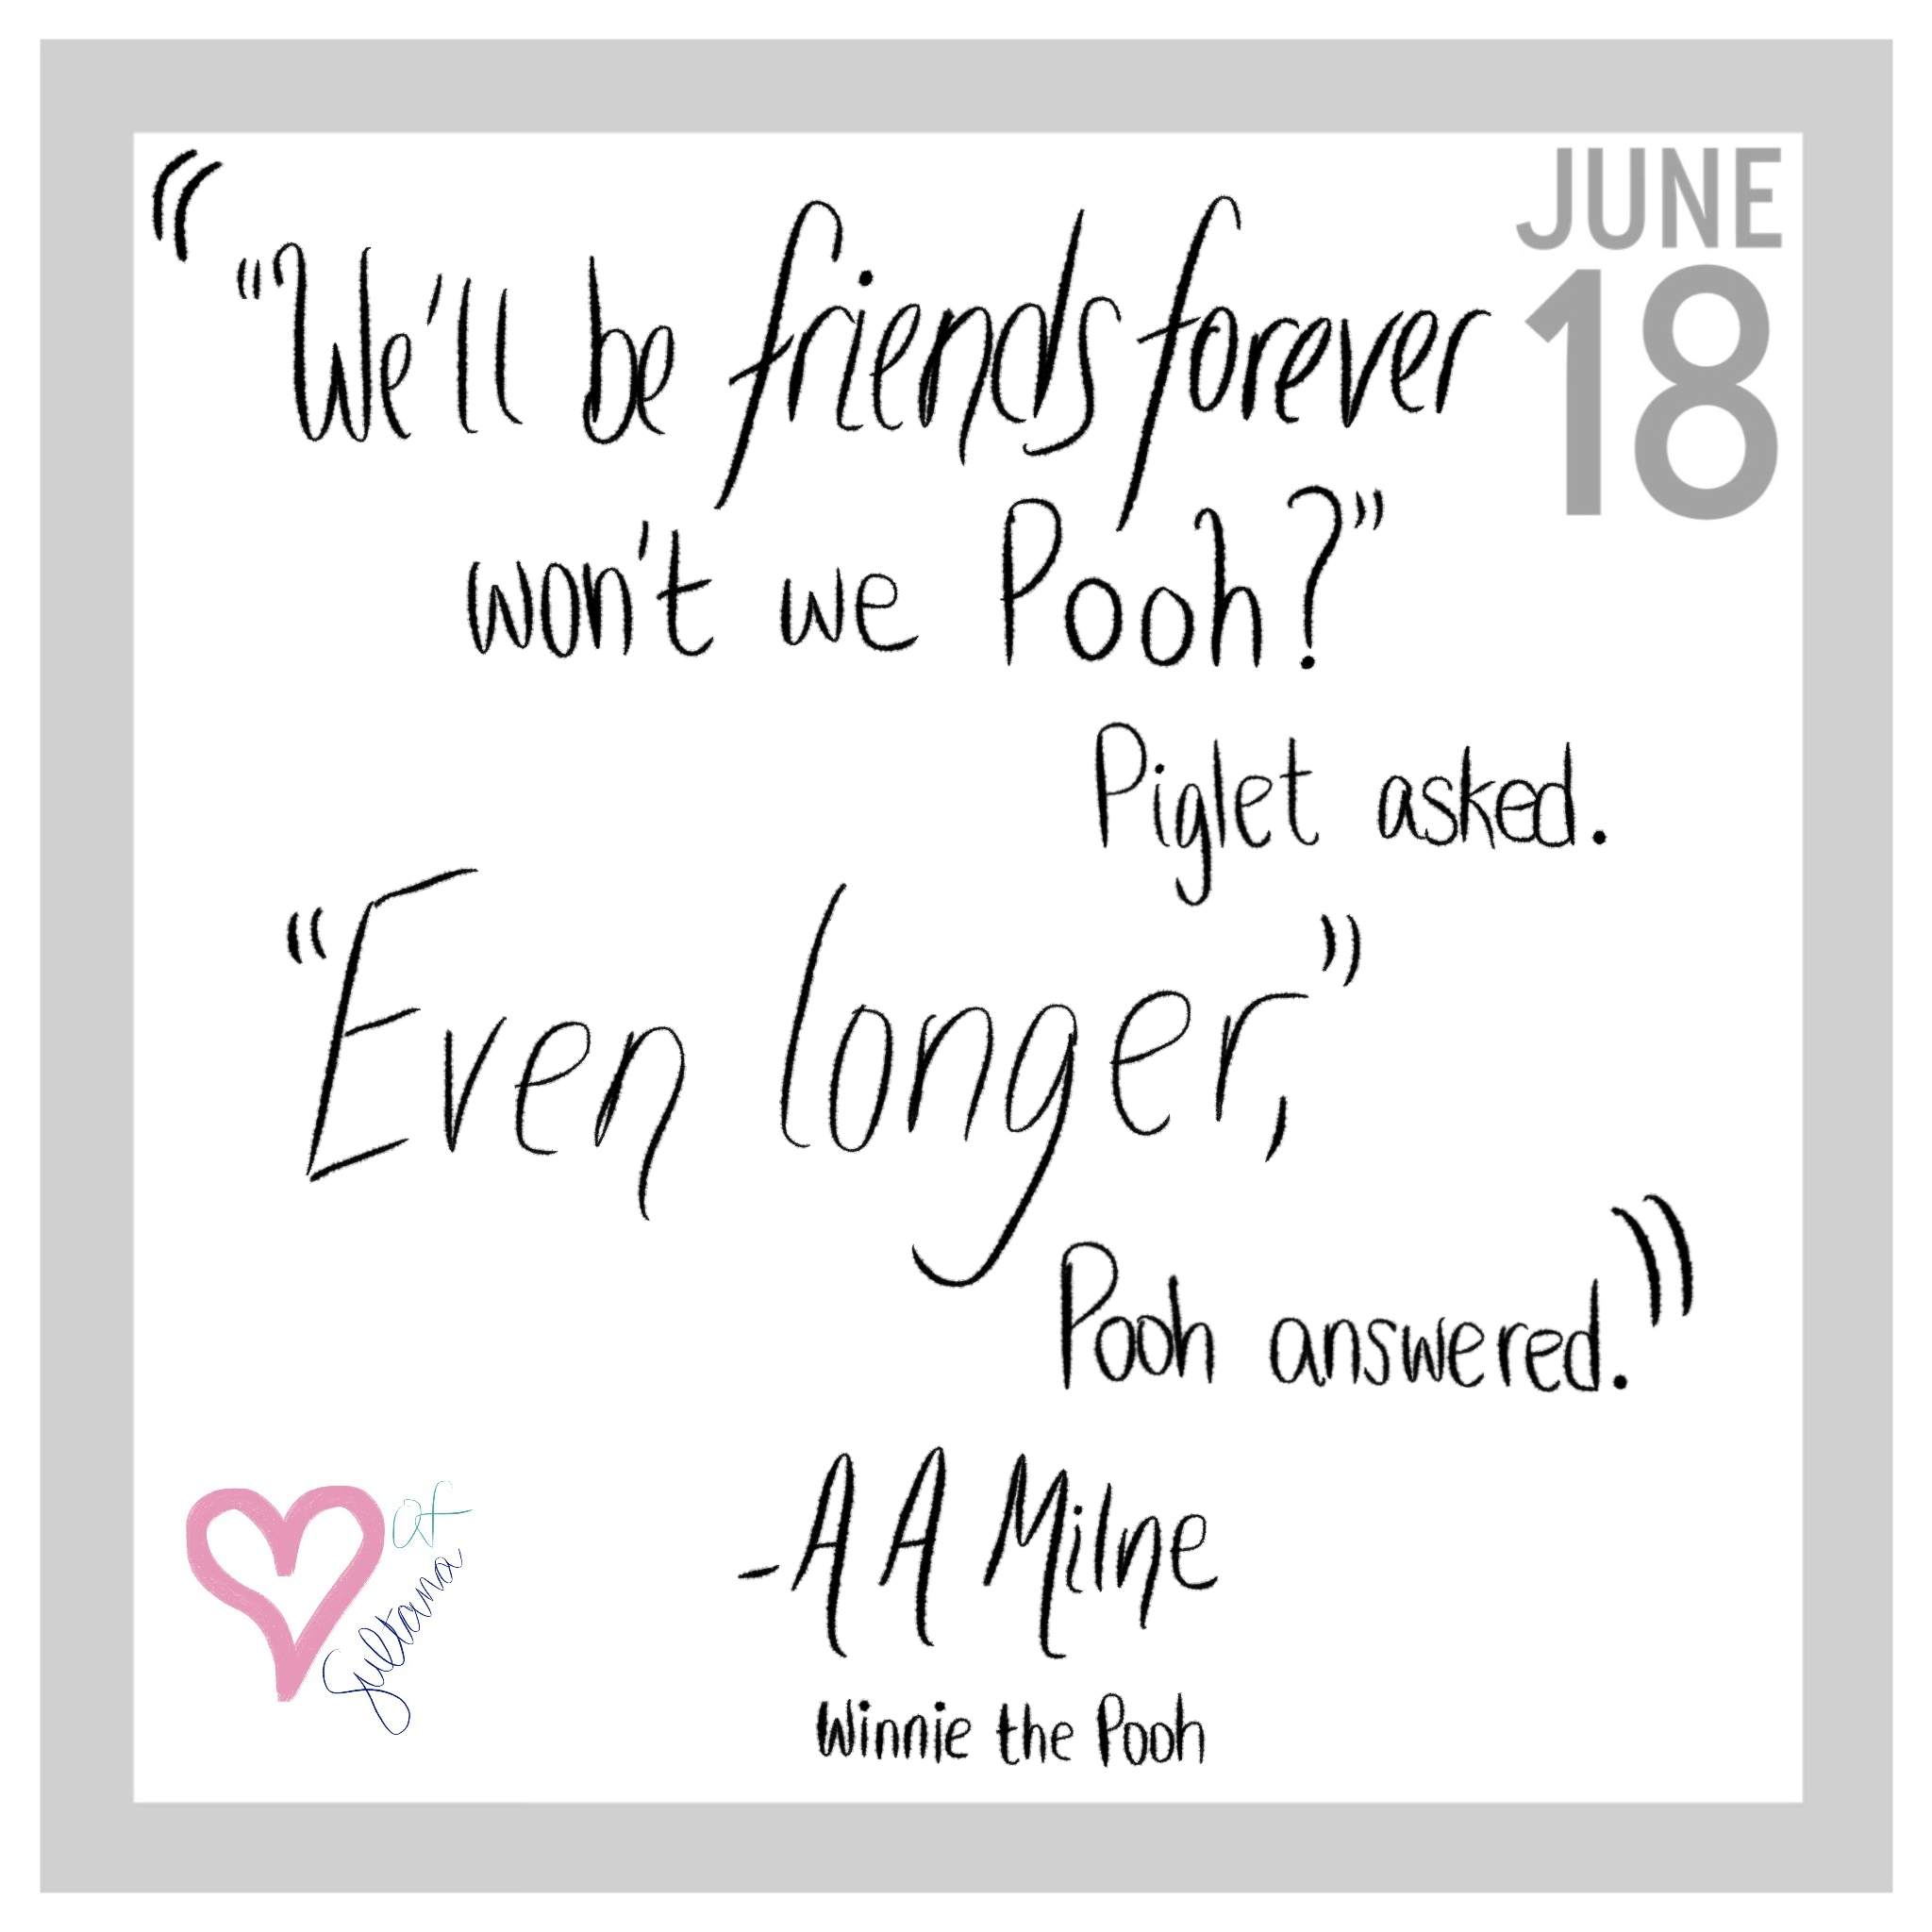 Pooh Quotes About Friendship Friends Forever Pooh Quote Winnie The Pooh Friendship Quote